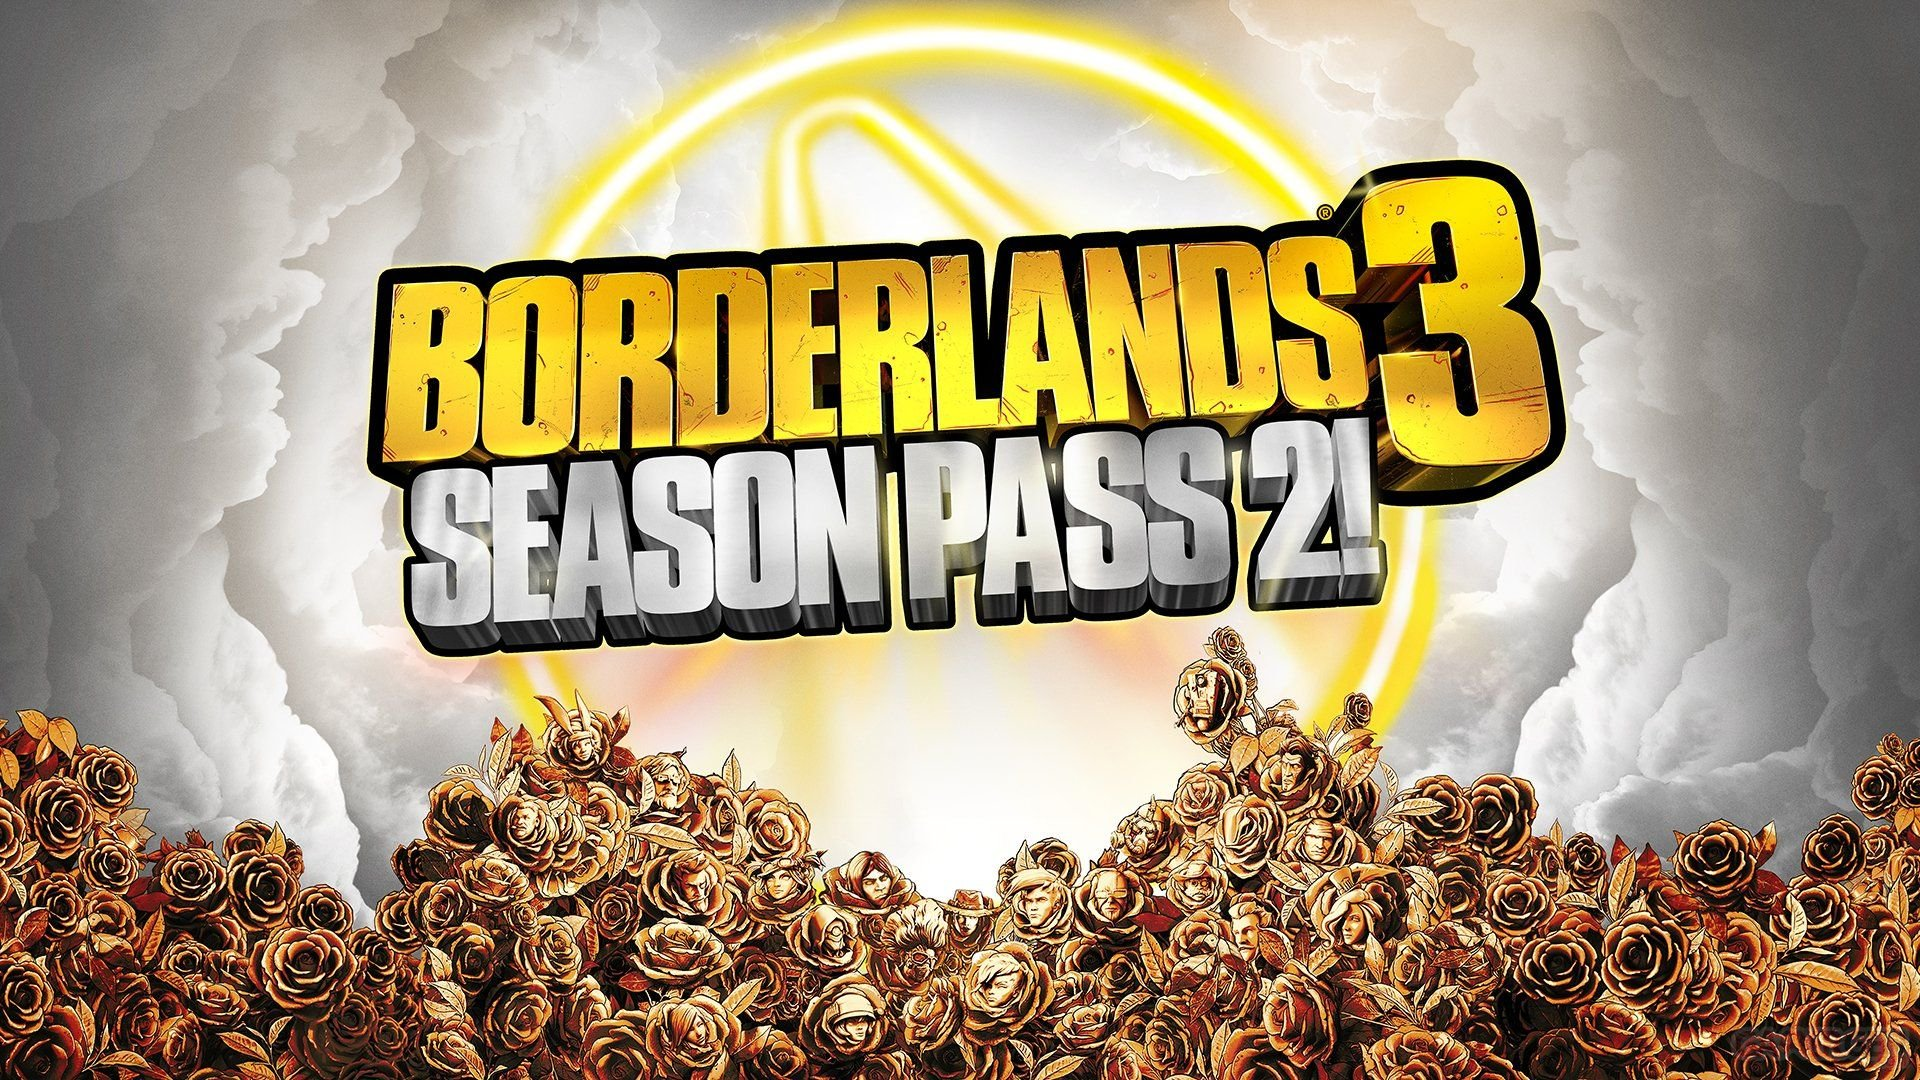 Borderlands 3 : Le Season Pass 2 annoncé